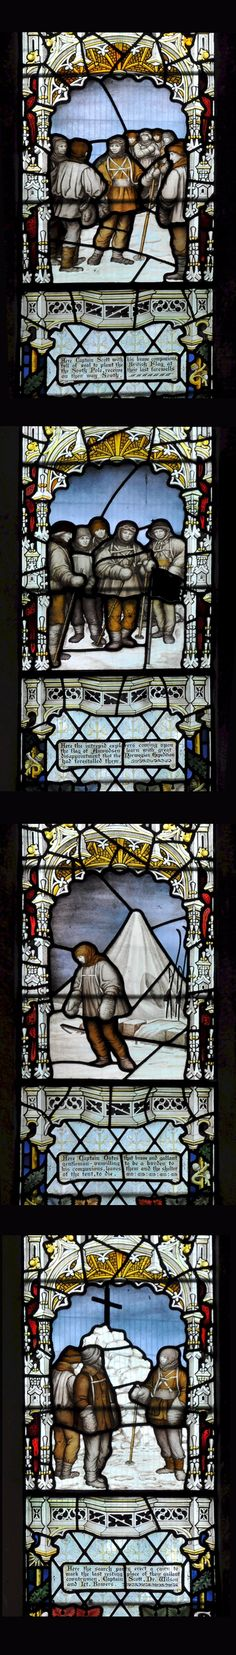 Sentimental stained glass panels to celebrate gallant British heros: Scenes - Departure to South Pole, South Pole disappointment, Oates leaving tent, and cairn of Scott, Wilson and Bowers. Binton Church, Warwickshire. Photos: Philip Halling Glass: Kempe